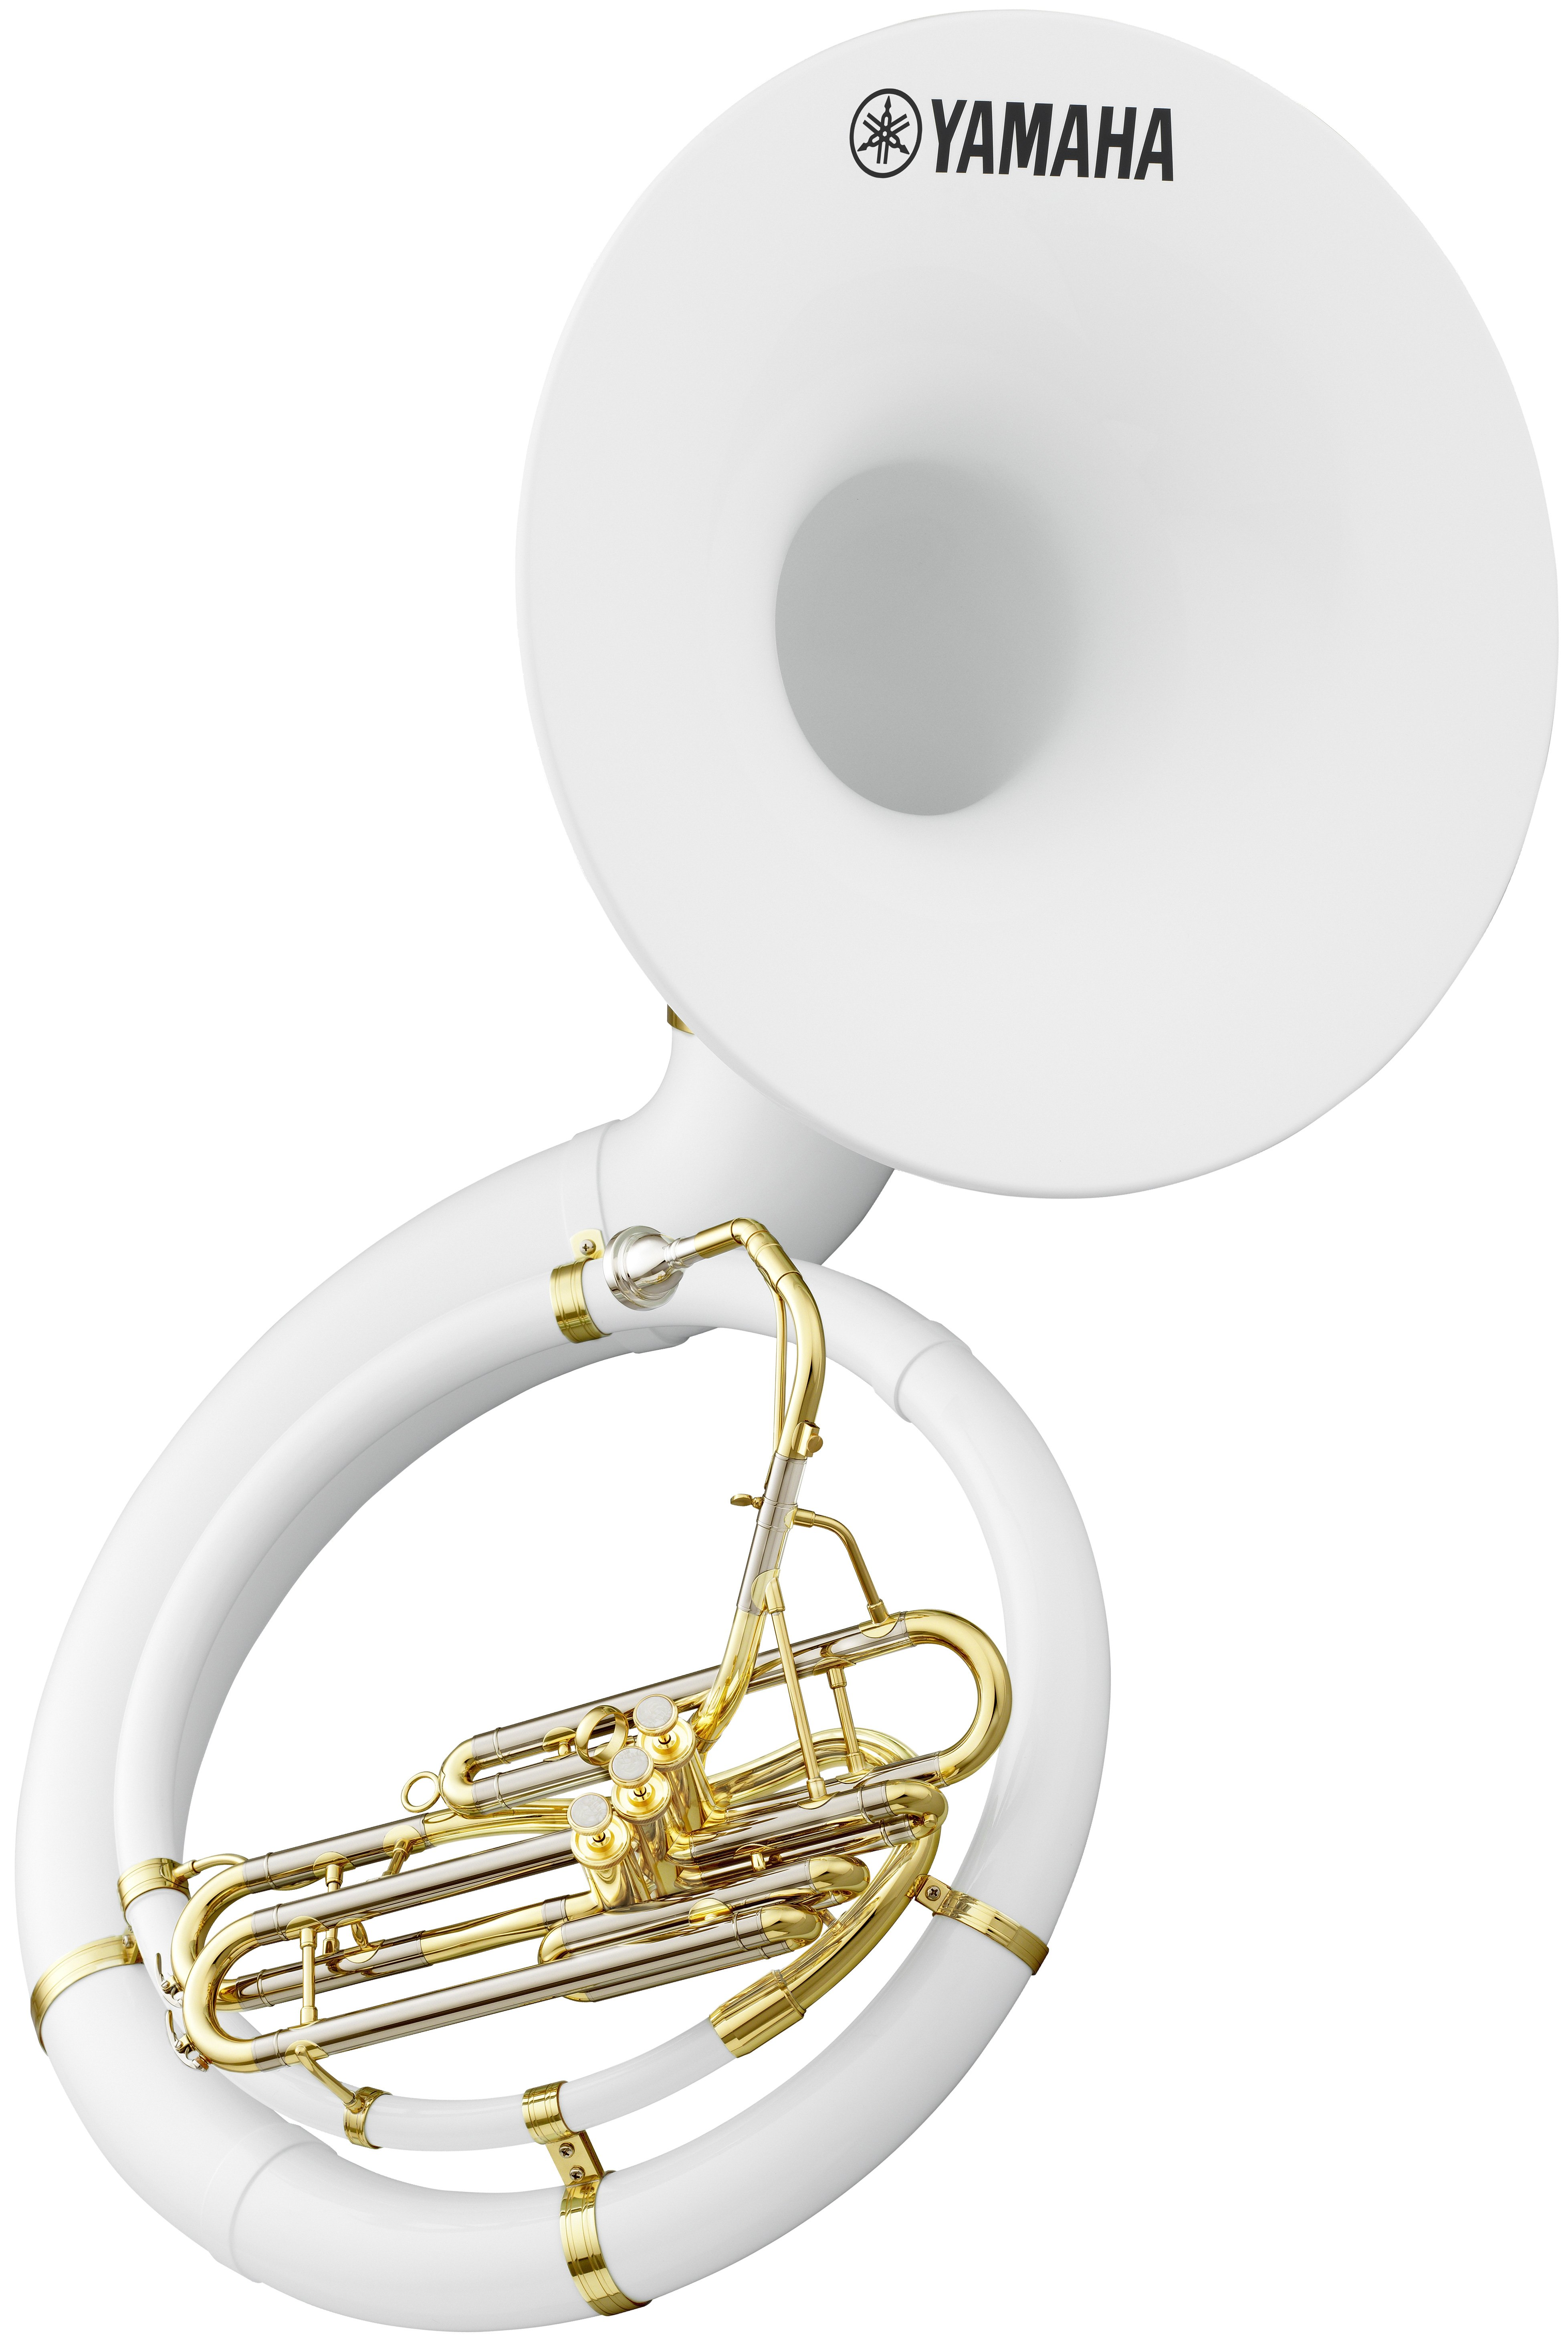 YSH-301 - Overview - Marching Brass - Brass & Woodwinds - Musical Instruments ...